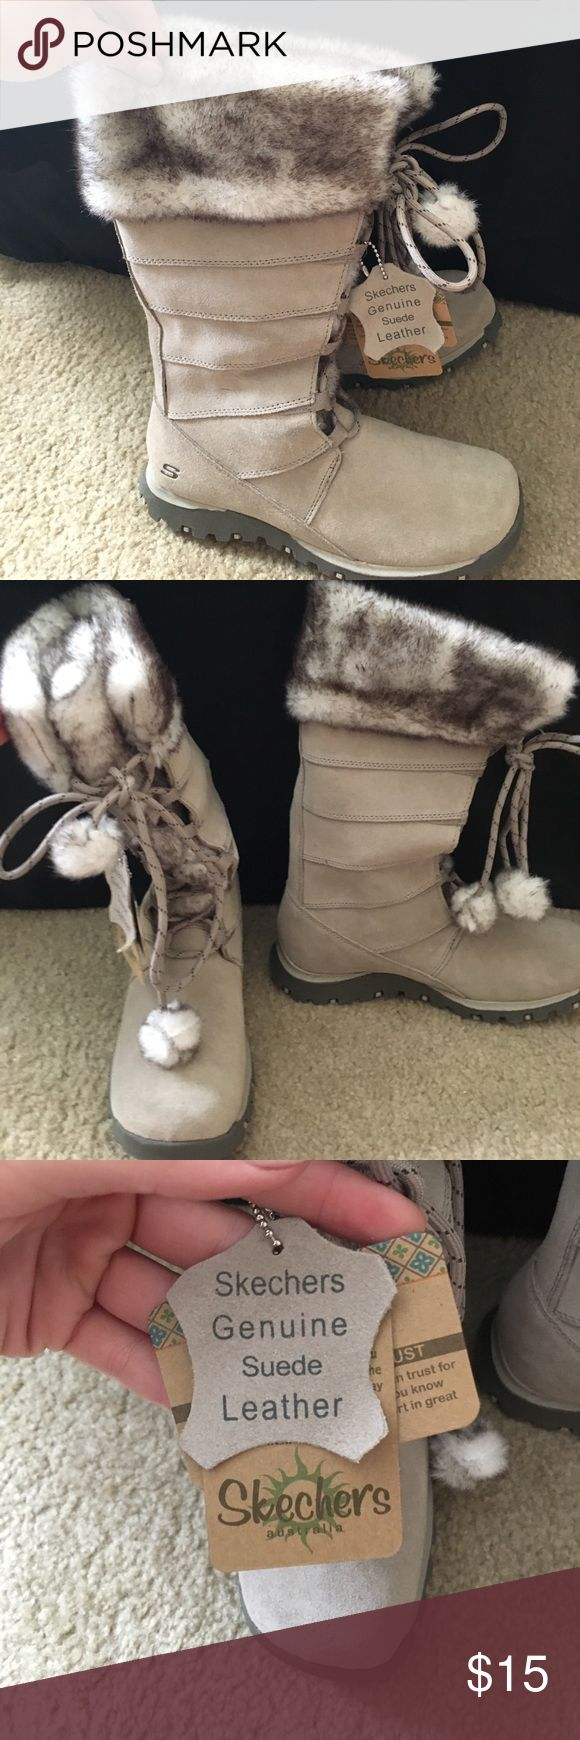 New Skechers Winter Boots New winter boots by Skechers Skechers Shoes Winter & Rain Boots